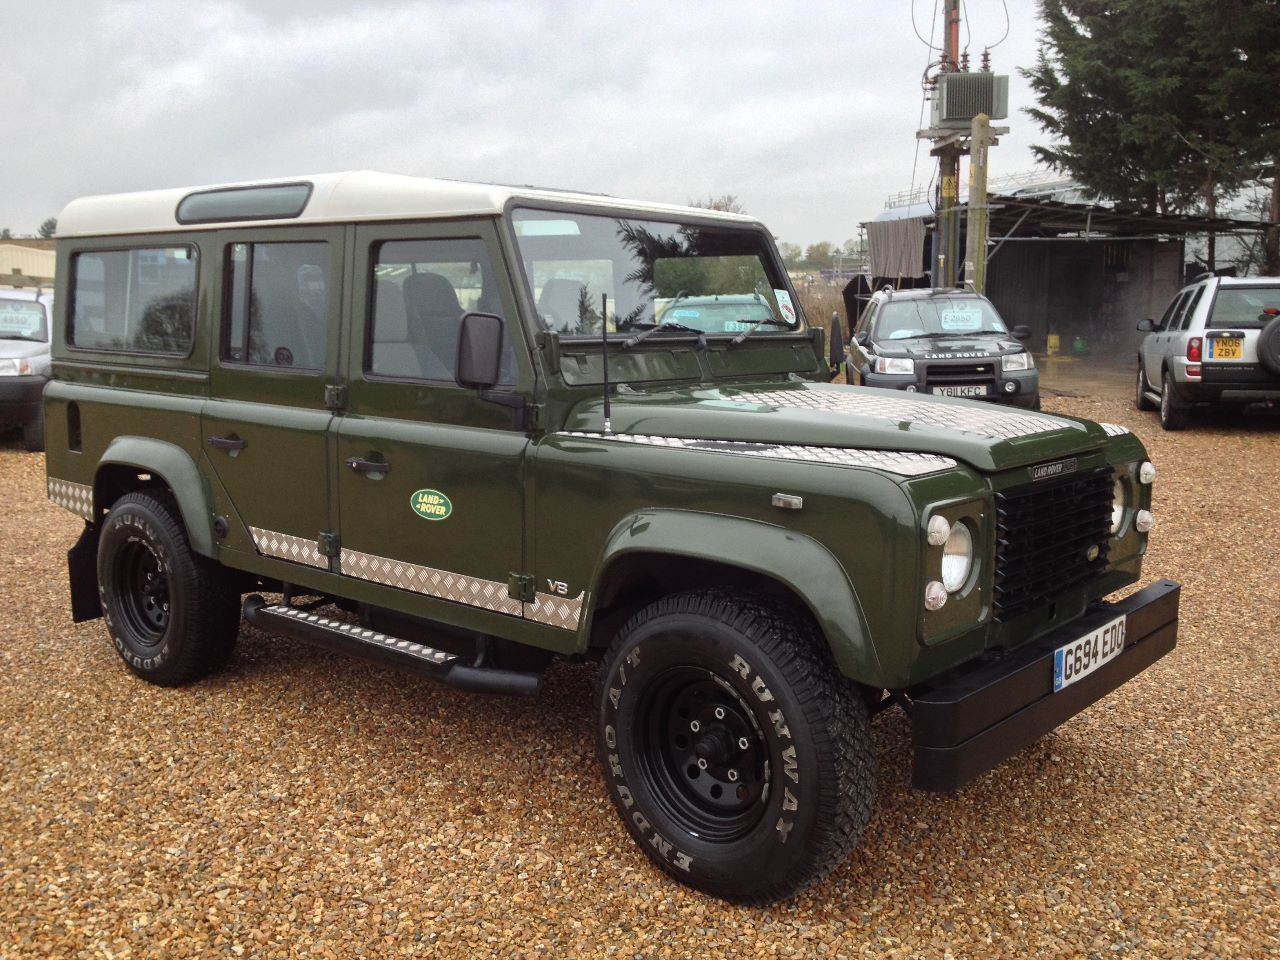 Blenheim Cars - Used cars in Witney - Autoweb